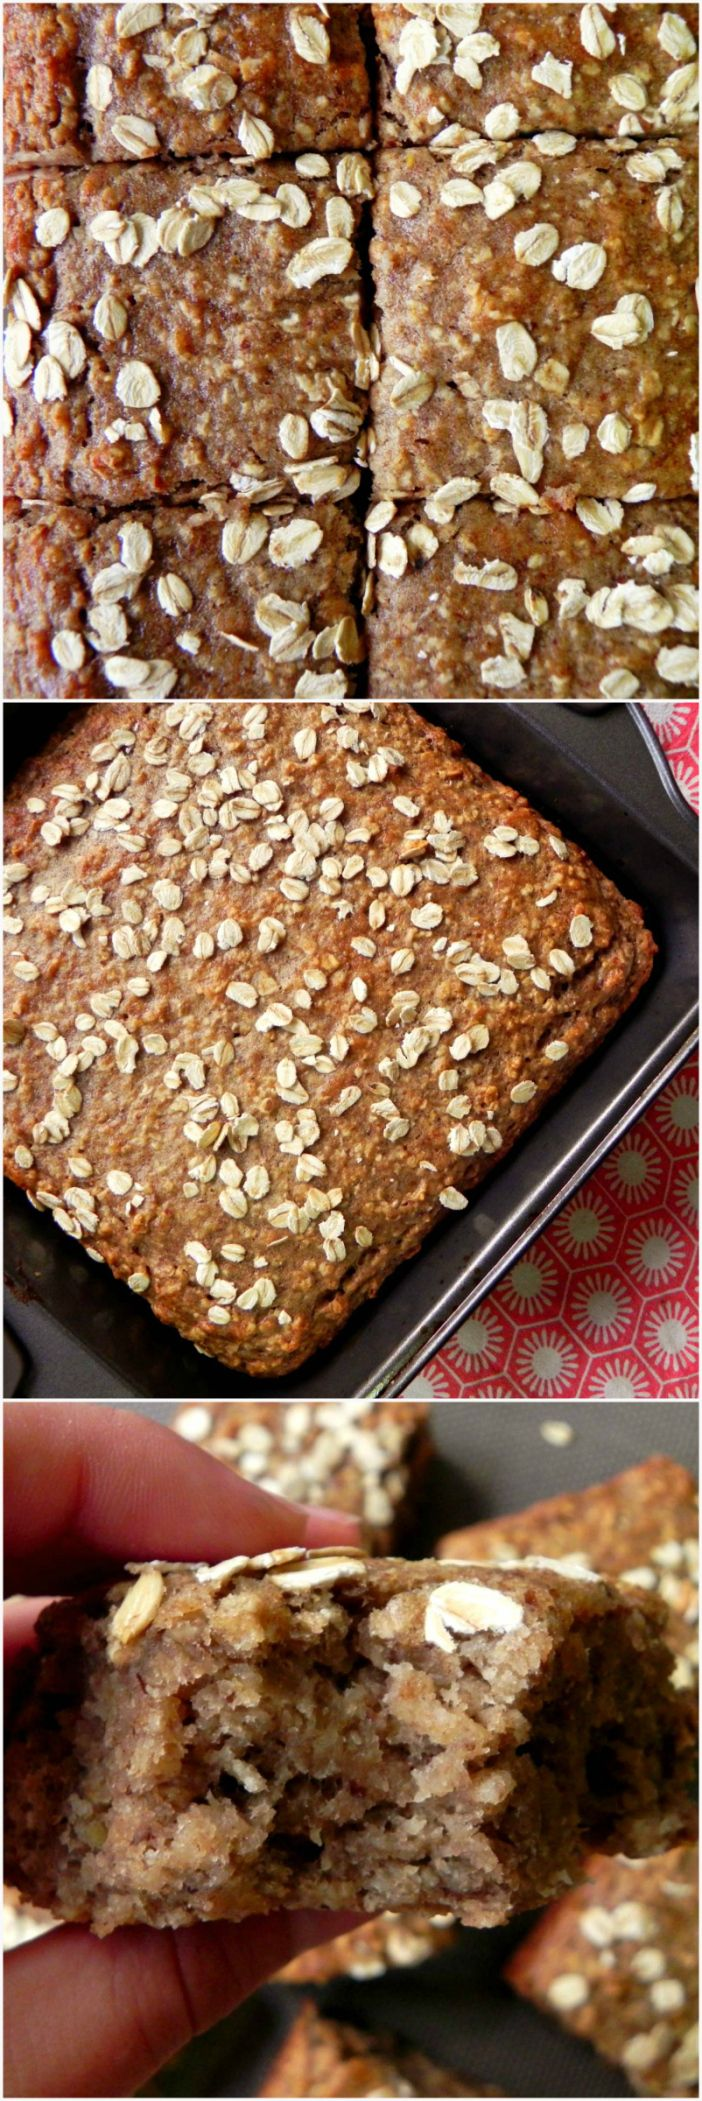 Banana & Oat Breakfast Cake with FIVE whole bananas!! So soft + moist! - Ceara's Kitchen #VEGAN + #HEALTHY